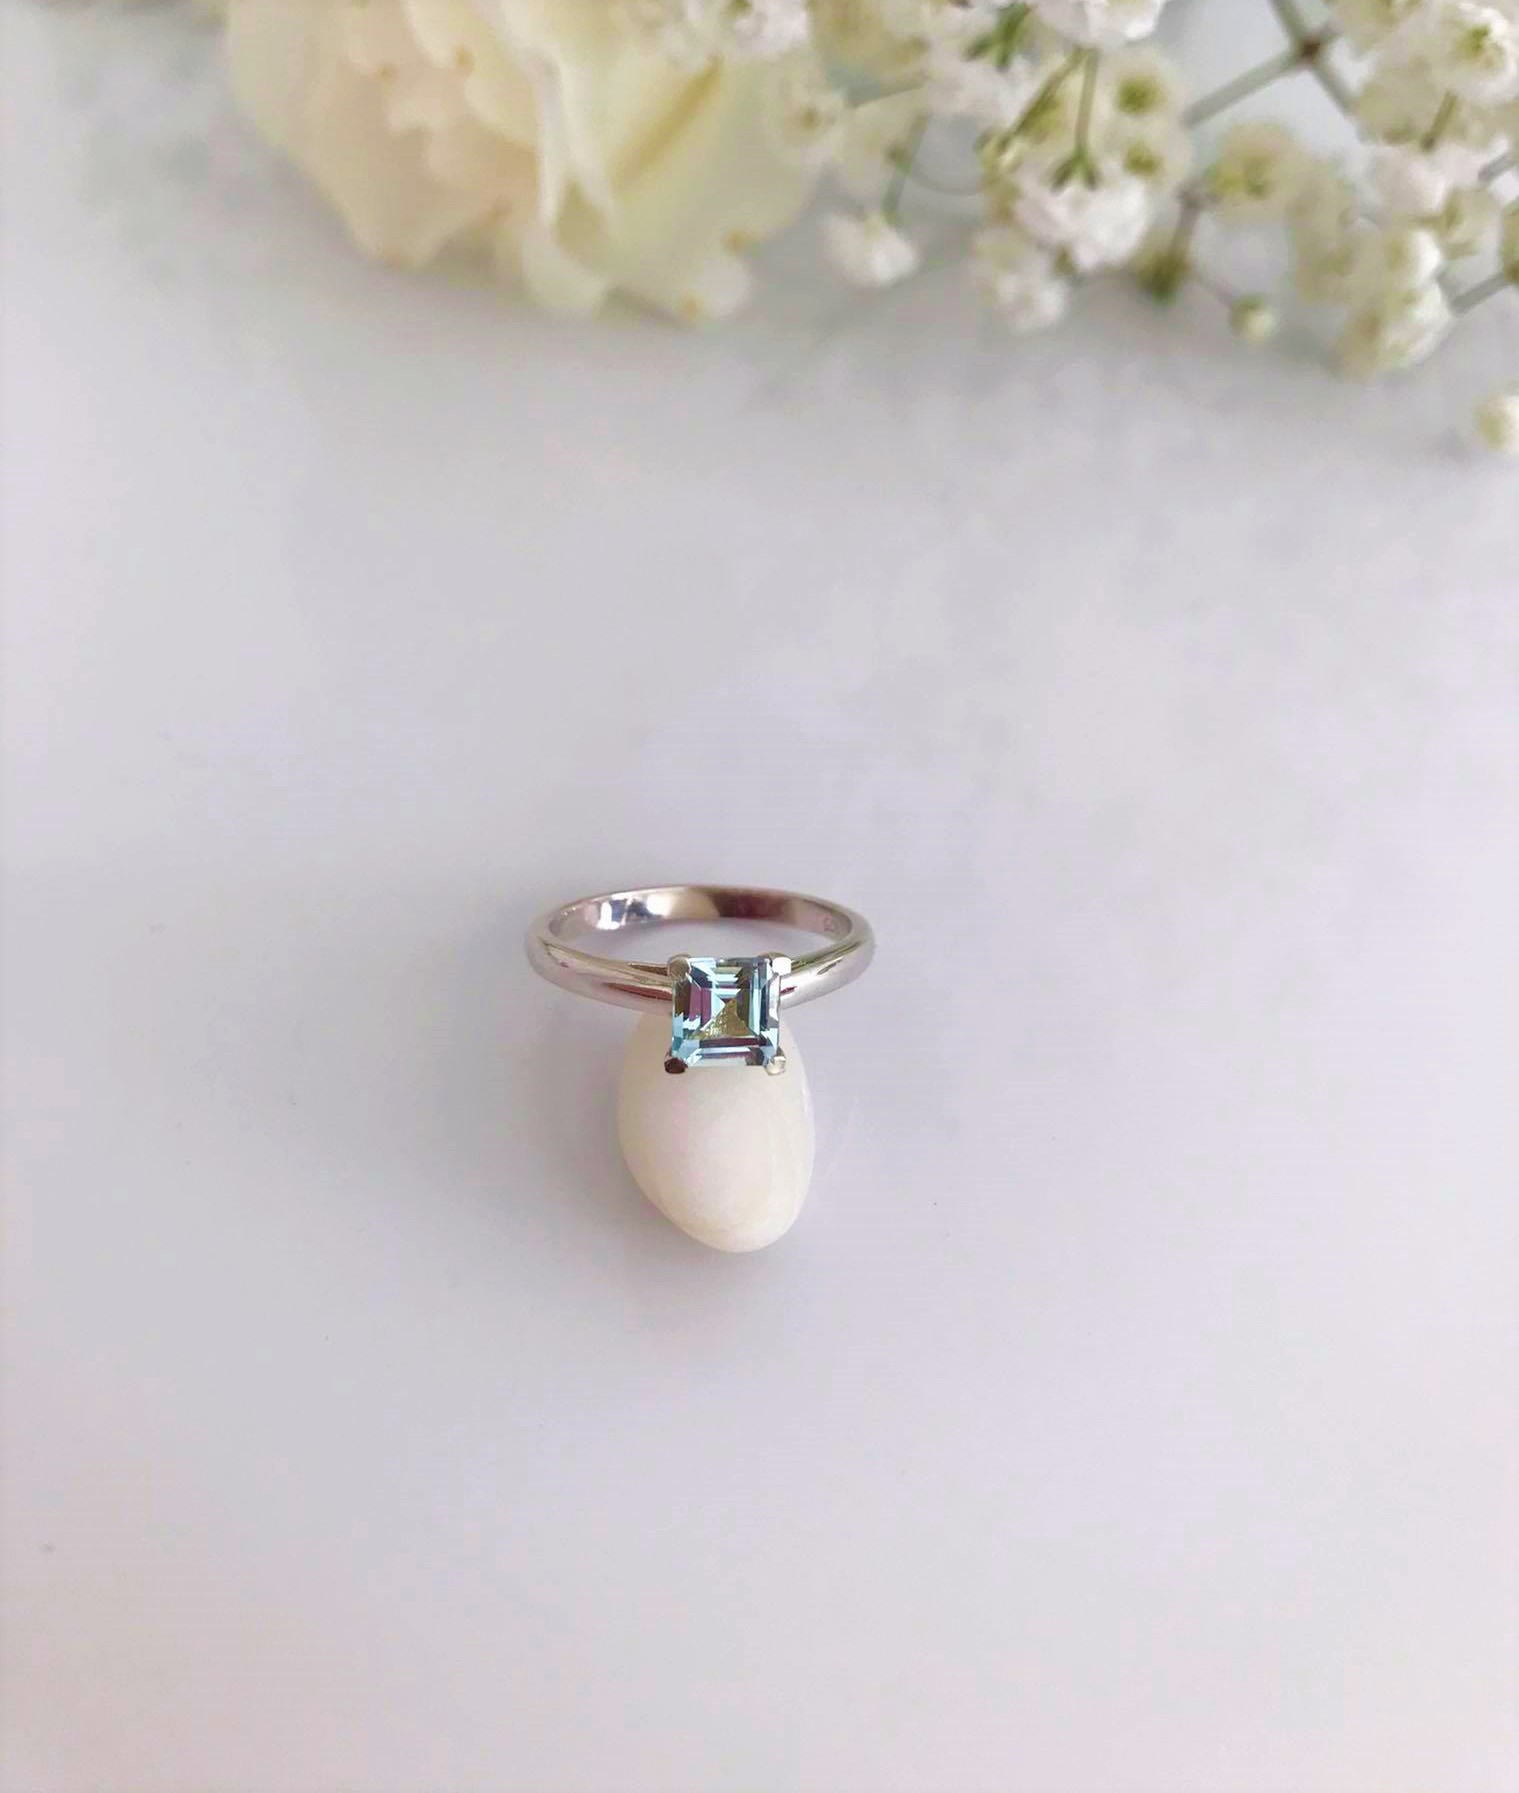 Faceted Blue Topaz set in Silver Ring Image